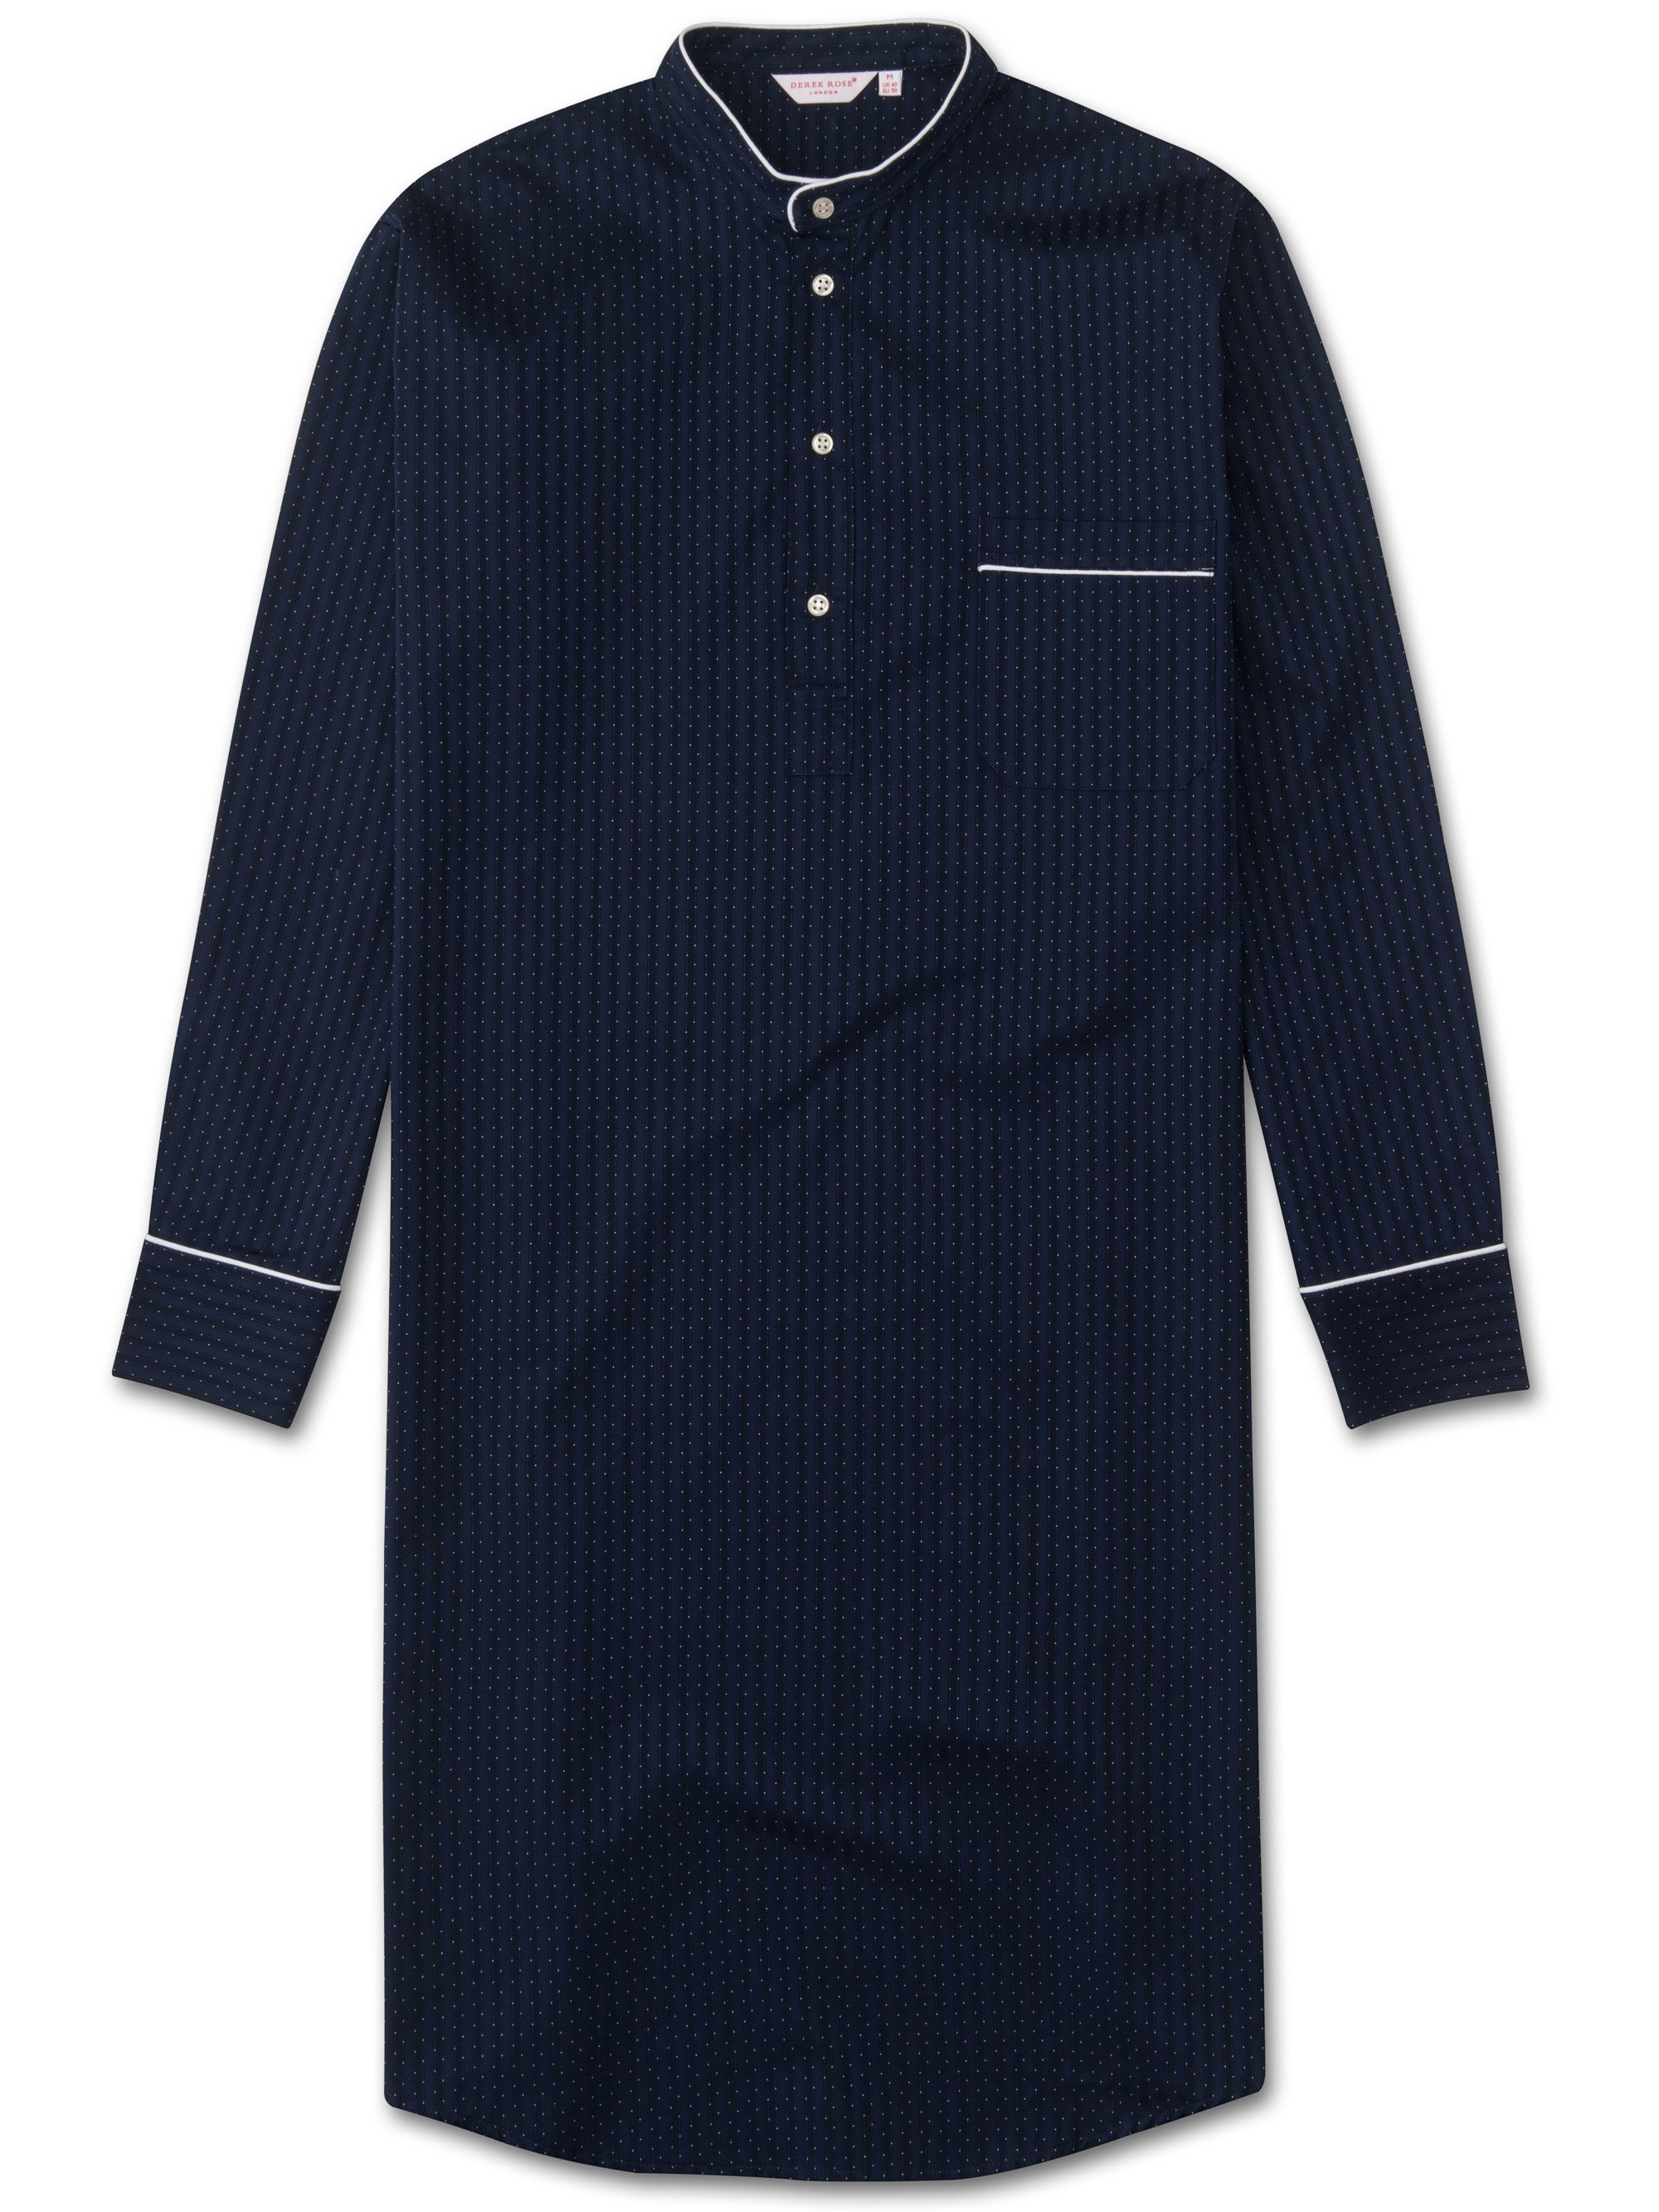 Men's Pullover Nightshirt Royal 40 Cotton Satin Stripe Polka Dot Navy